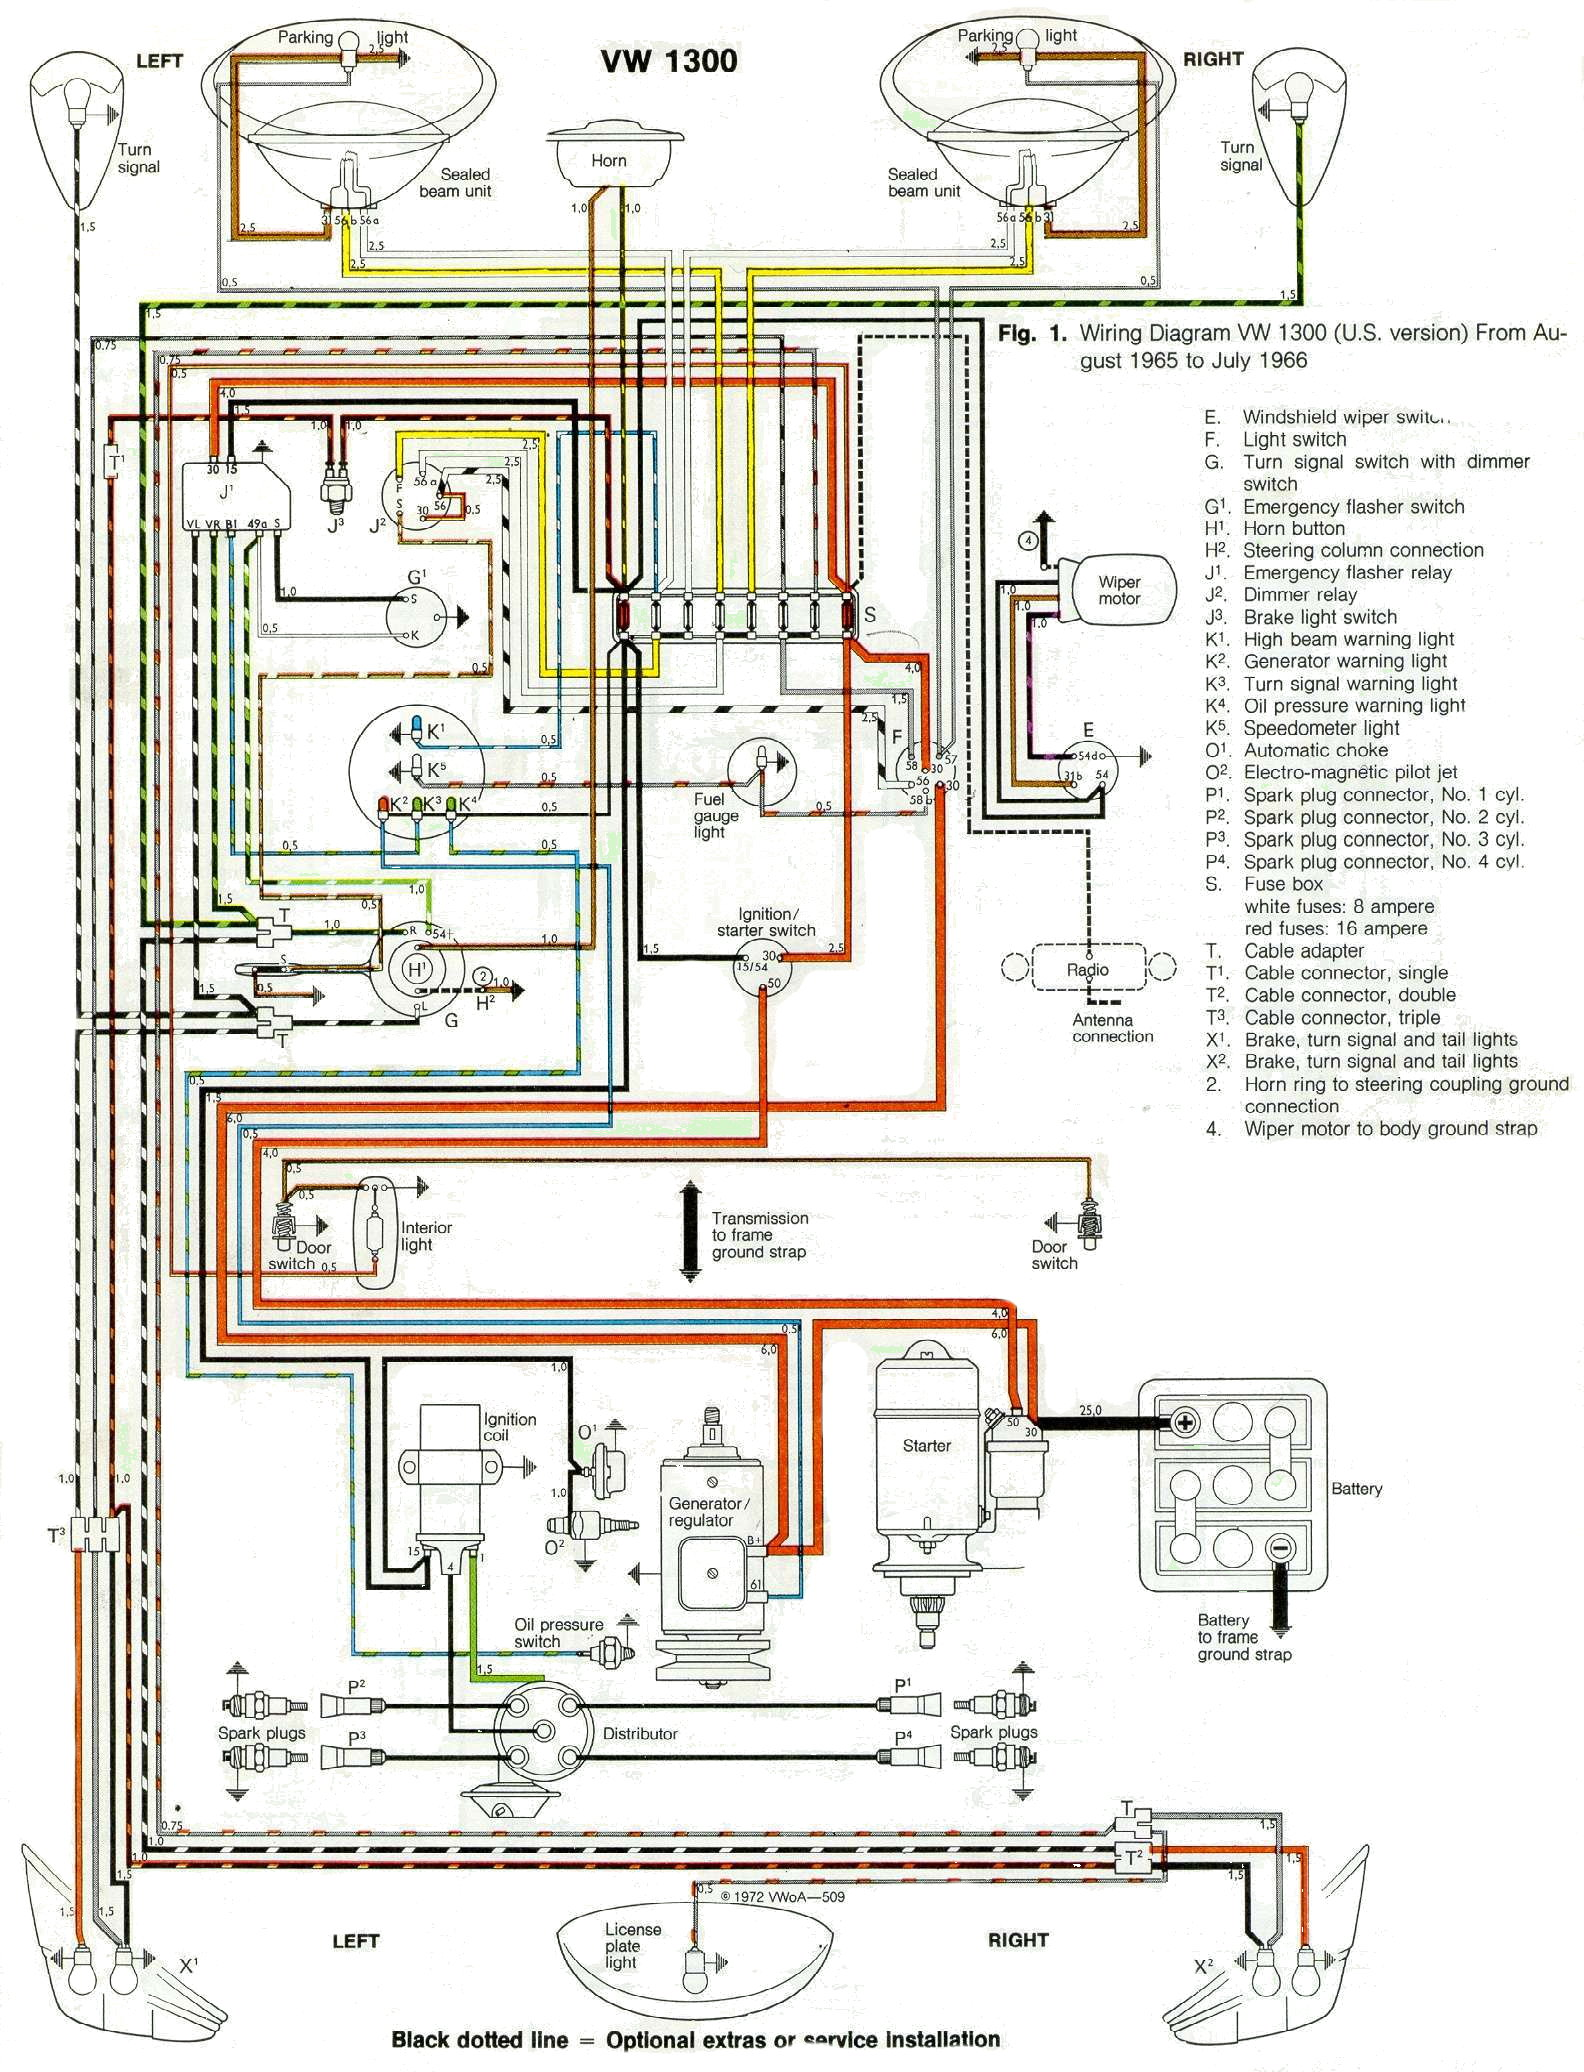 1967 vw wiring diagrams 1967 wiring diagrams online